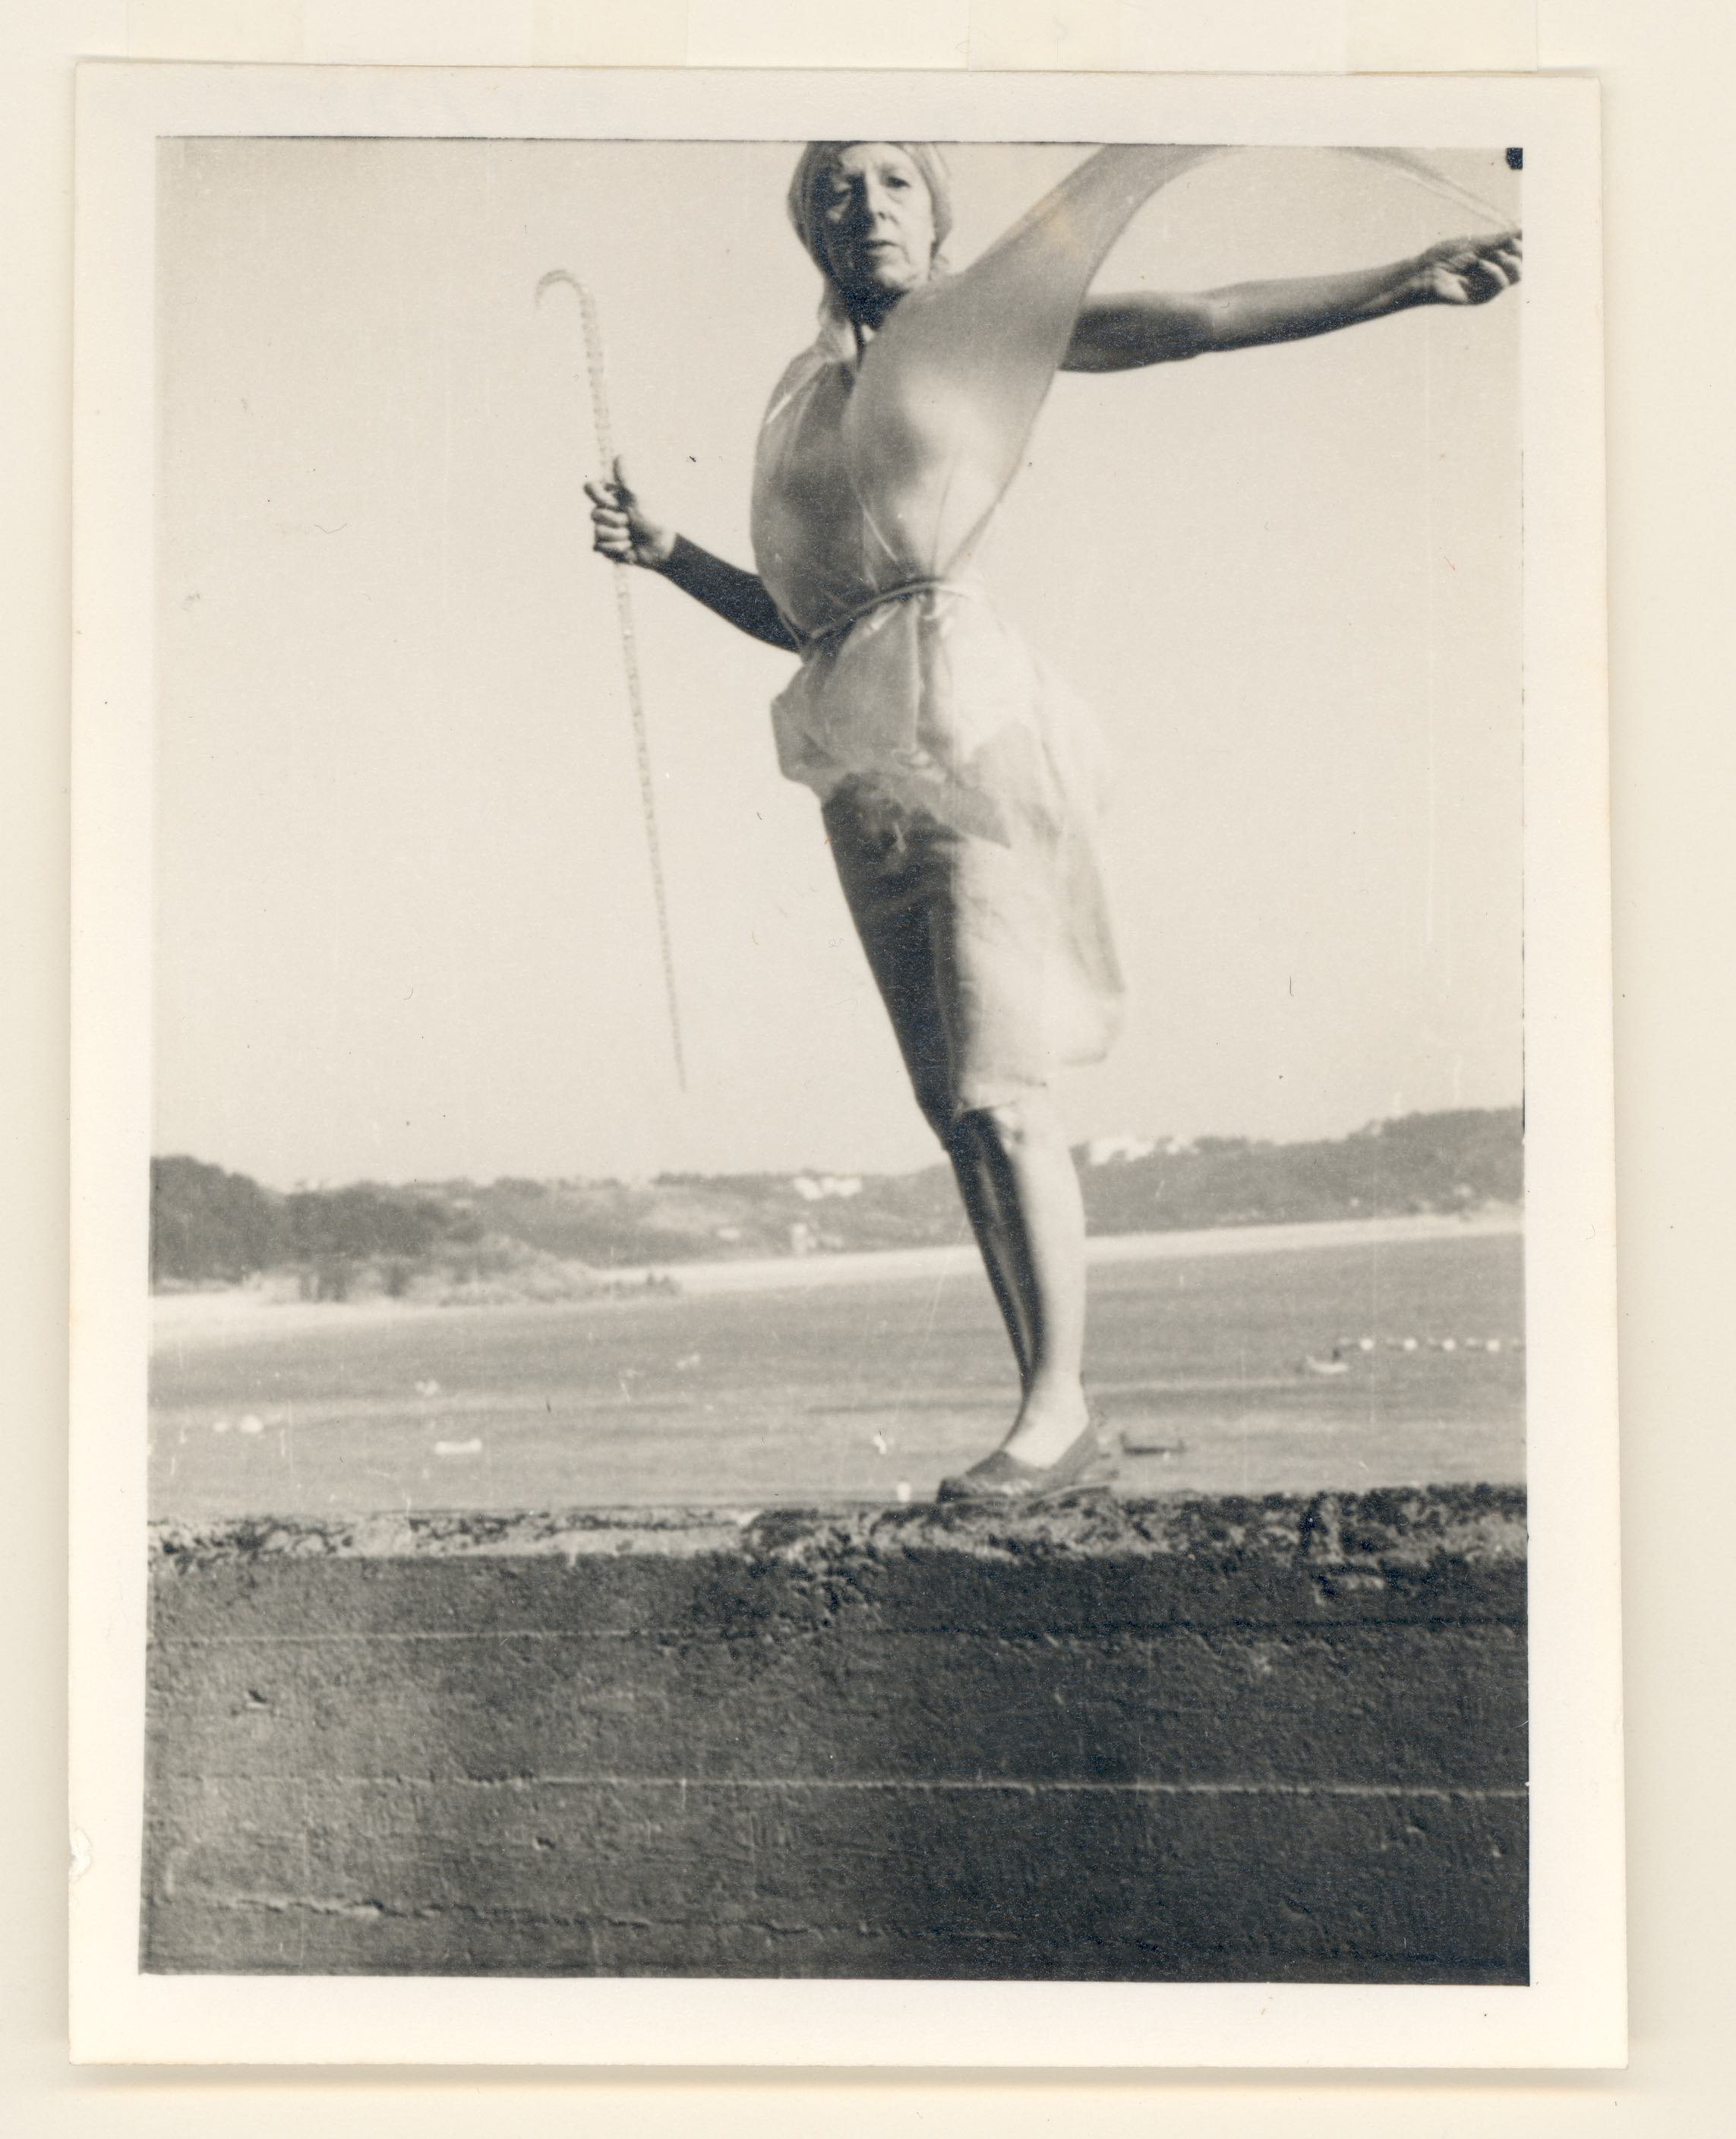 Claude Cahun and Marcel Moore, Self Portrait (on sea wall), 1947